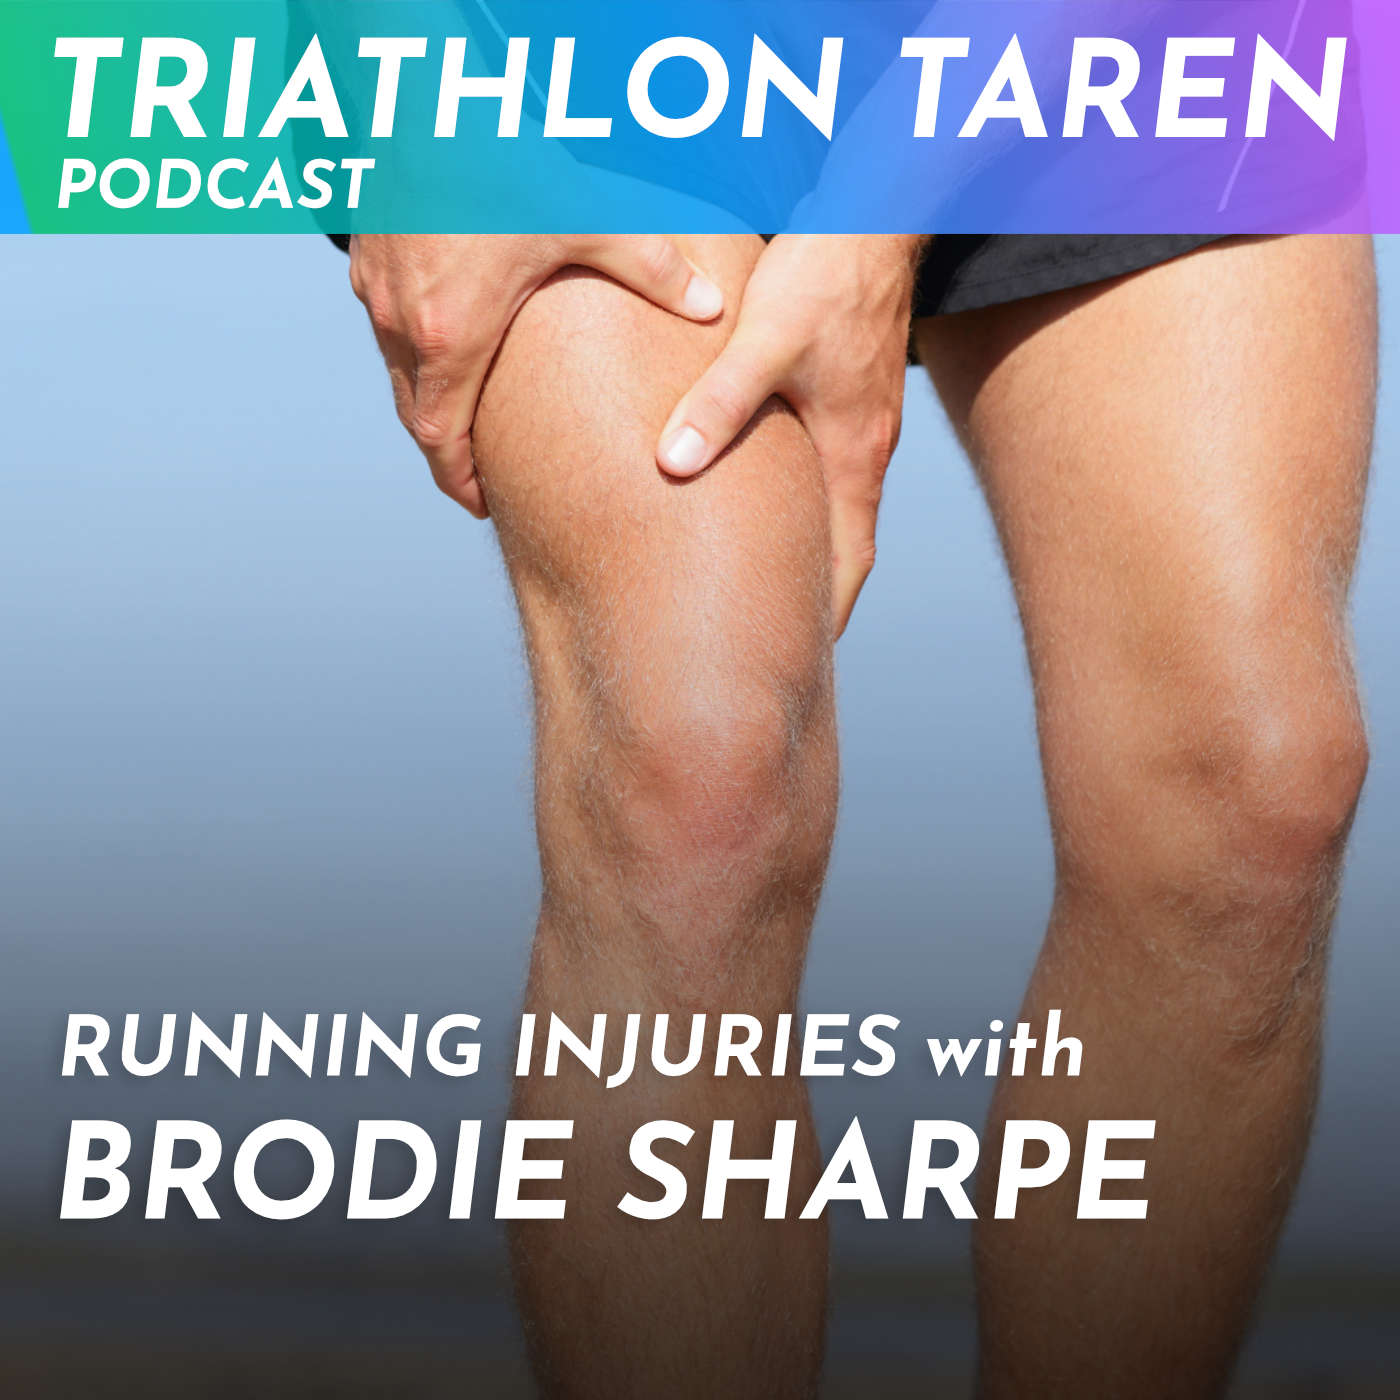 How to Avoid Most Common Running Injuries with Brodie Sharpe